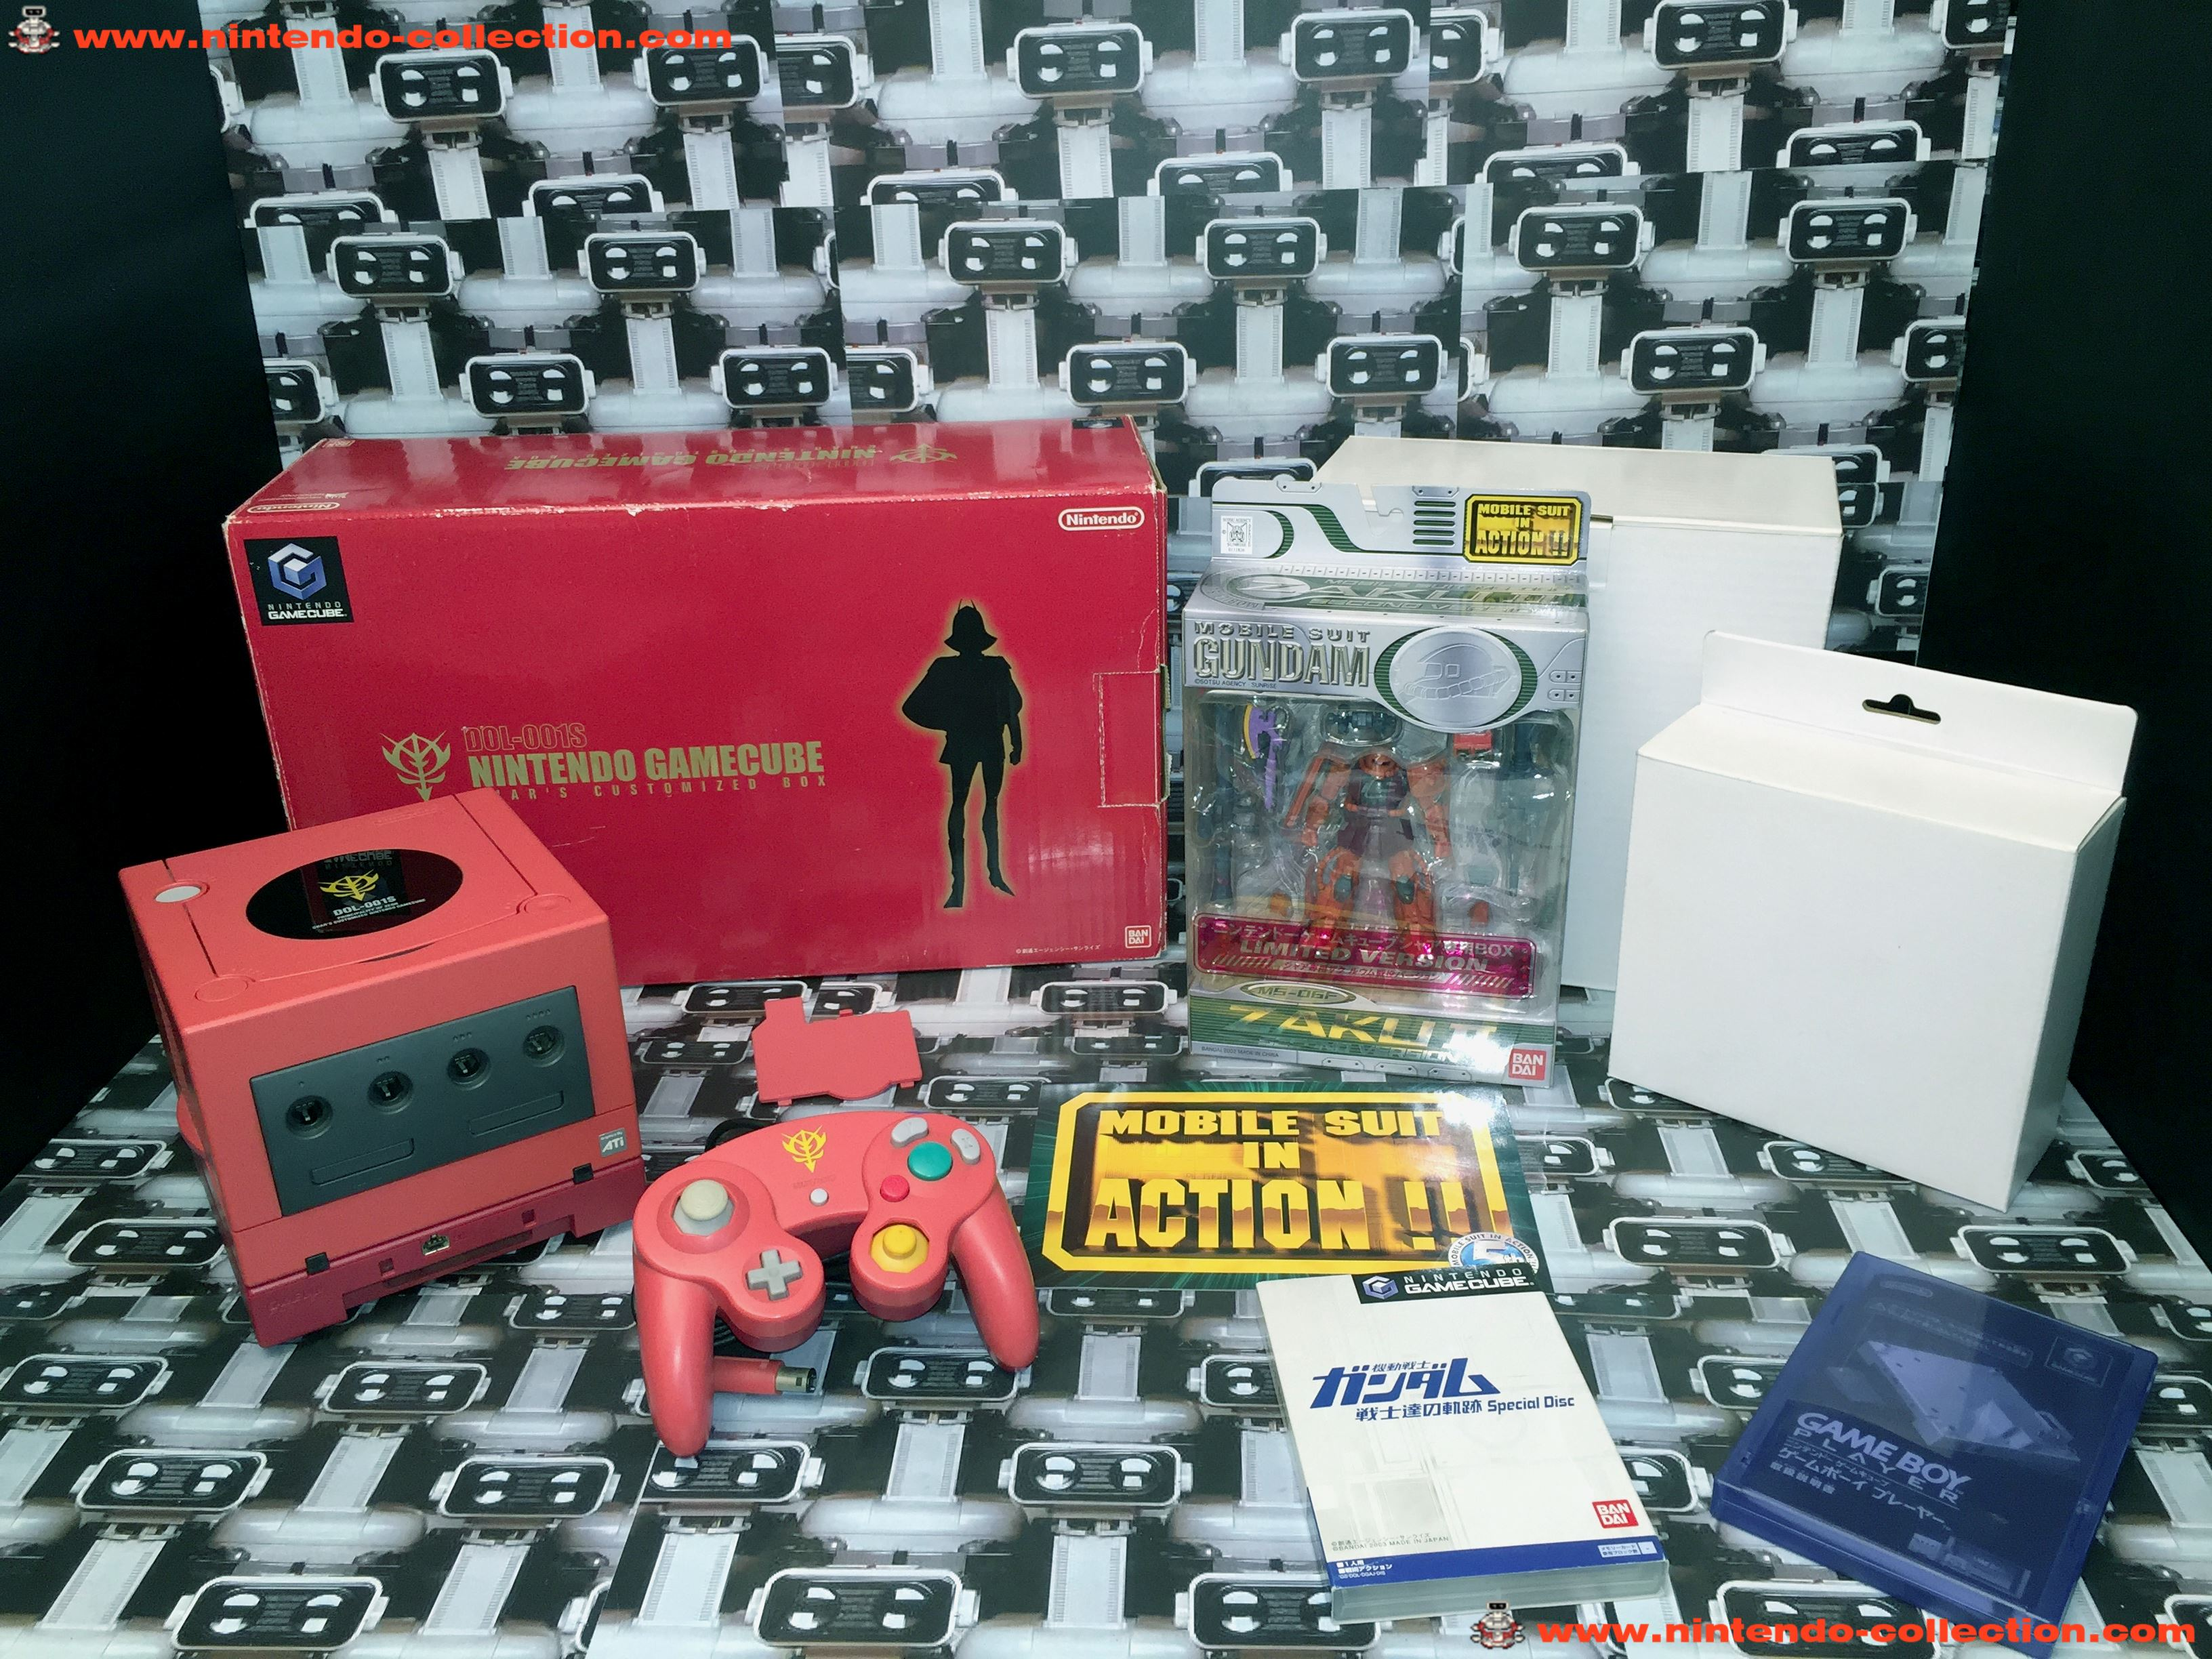 www.nintendo-collection.com - Gamecube Gundam Char's Customized Box Limited Edition Japanese  Japan